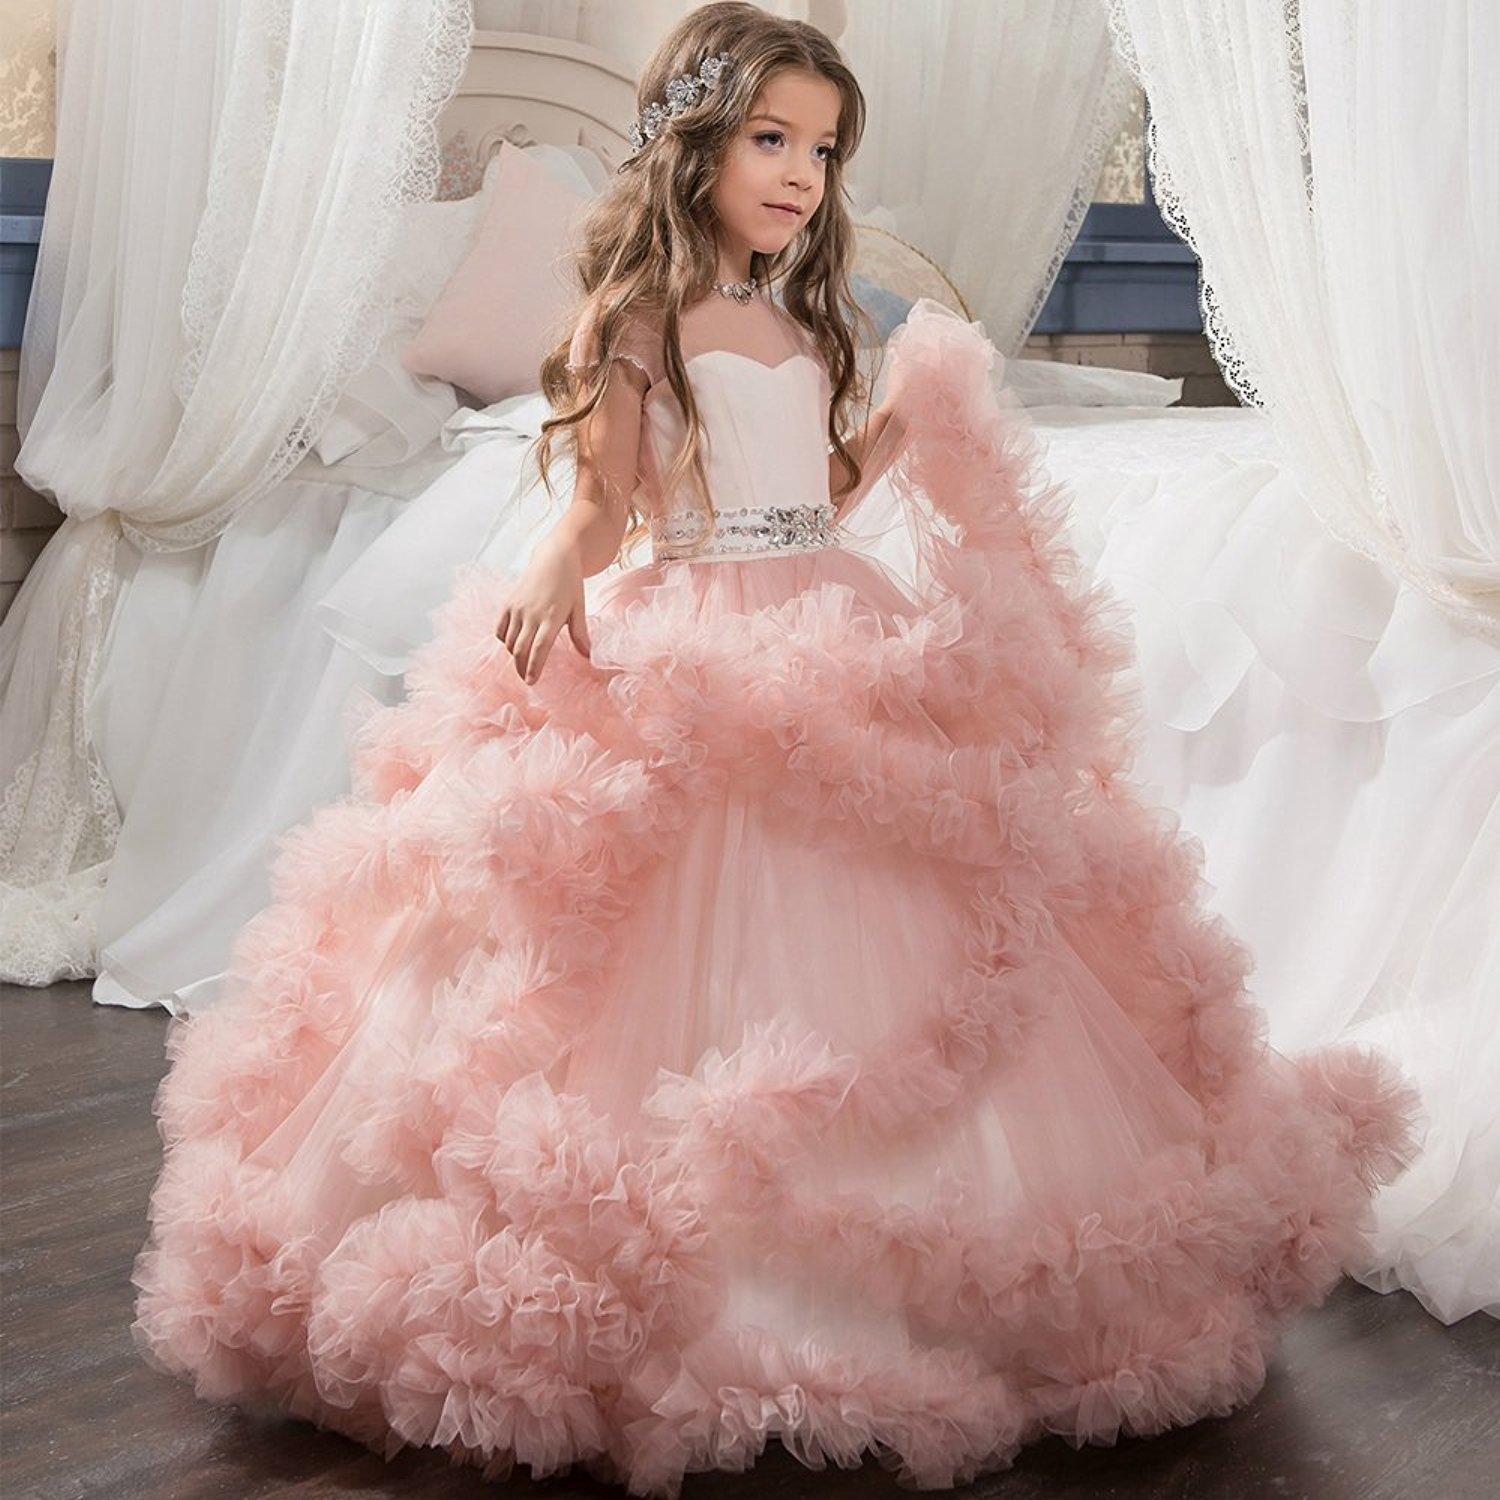 Children Princess Dress Flower Girl Wedding Dresses Girls Evening Party Dress Tutu Costumes H358